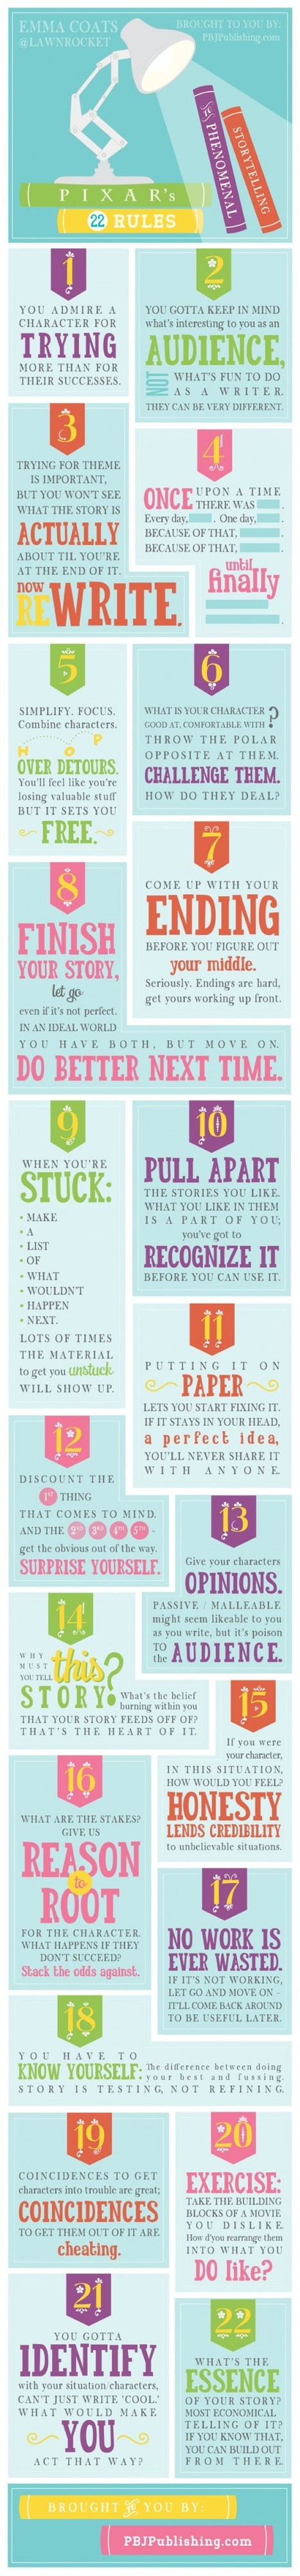 Pixar's 22 Rules to Phenomenal Storytelling [INFOGRAPHIC] | The New Classroom Culture | Scoop.it